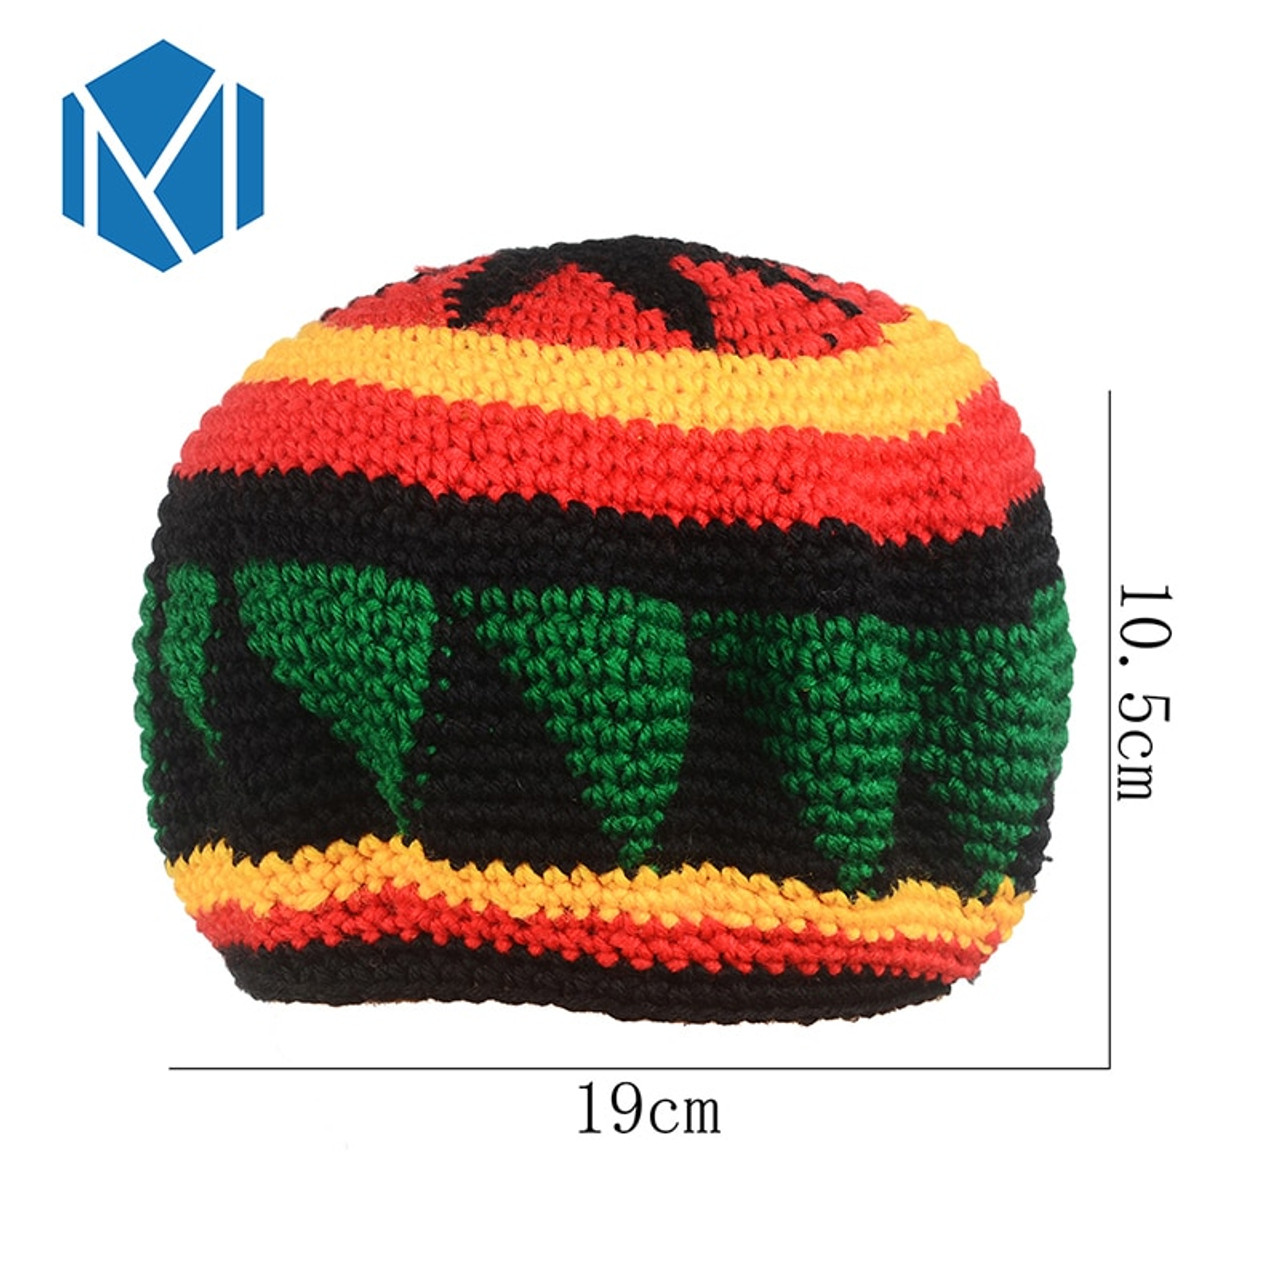 ed22dc7bc89 ... Miya Mona Men s Winter Hat Wig Braid Jamaican Bob Marley Rasta  Multicolor Headwear Striped Cappello Beanie ...